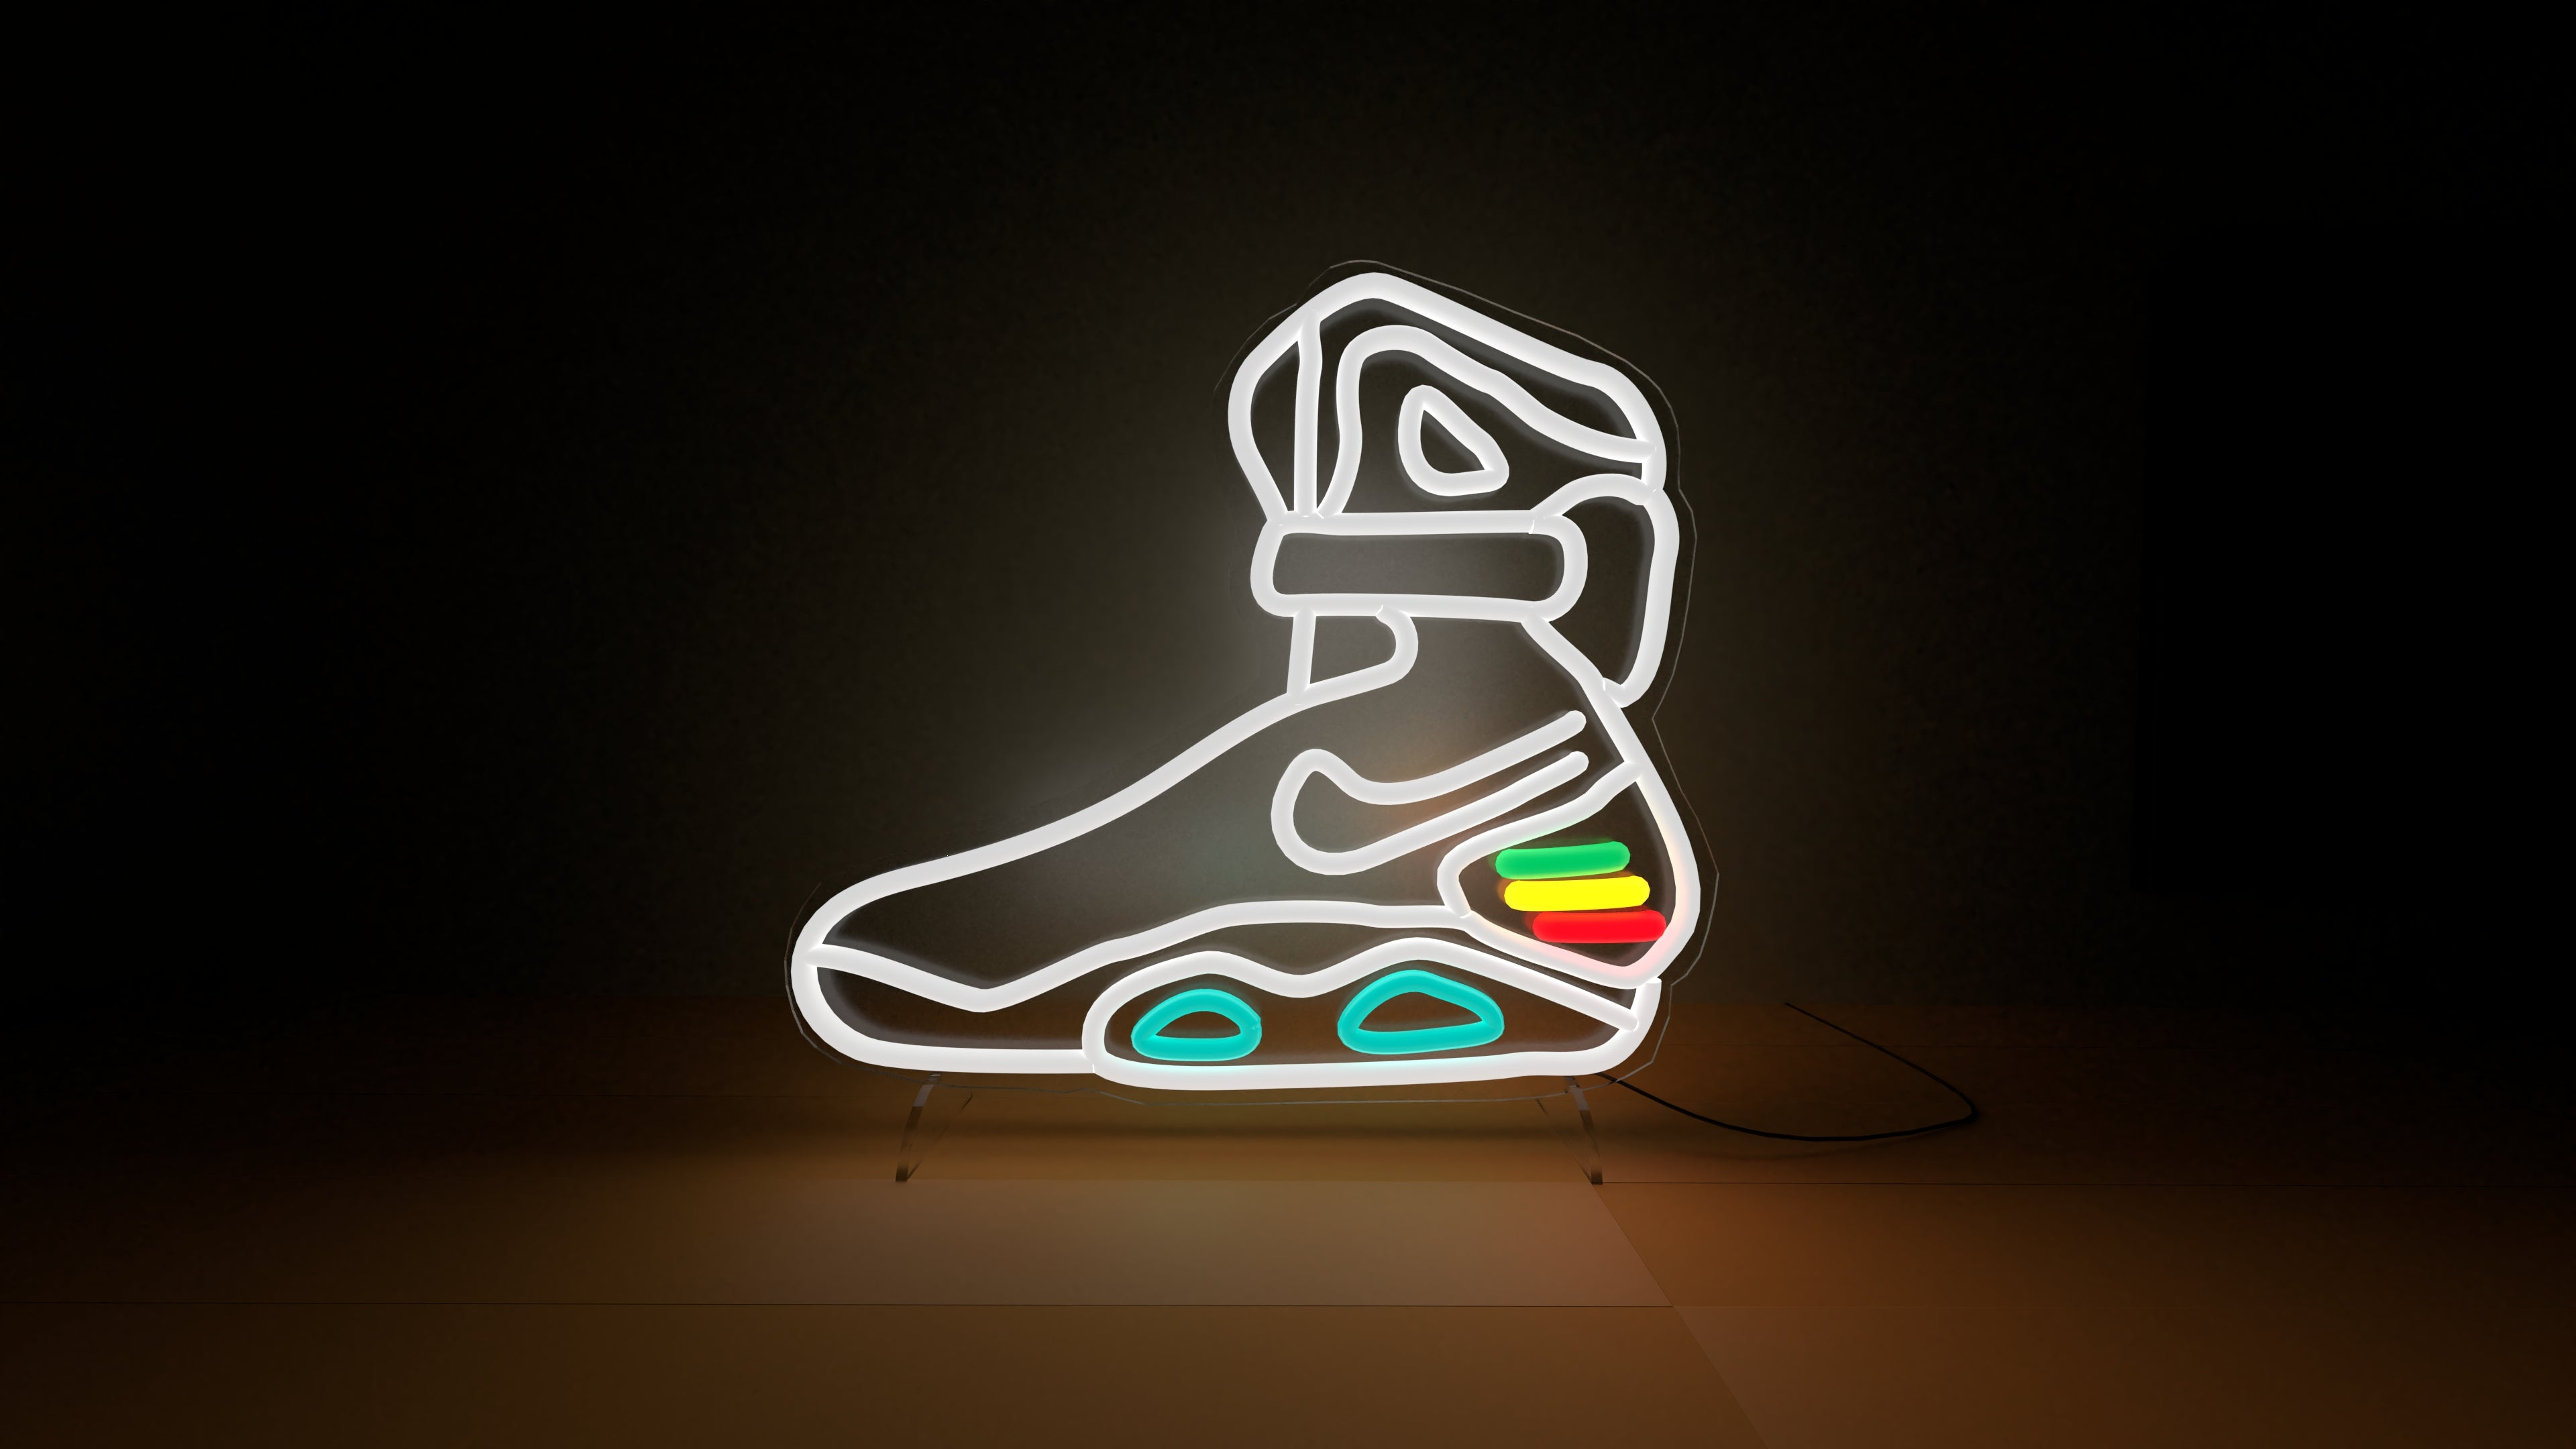 Back to the futur neon sign